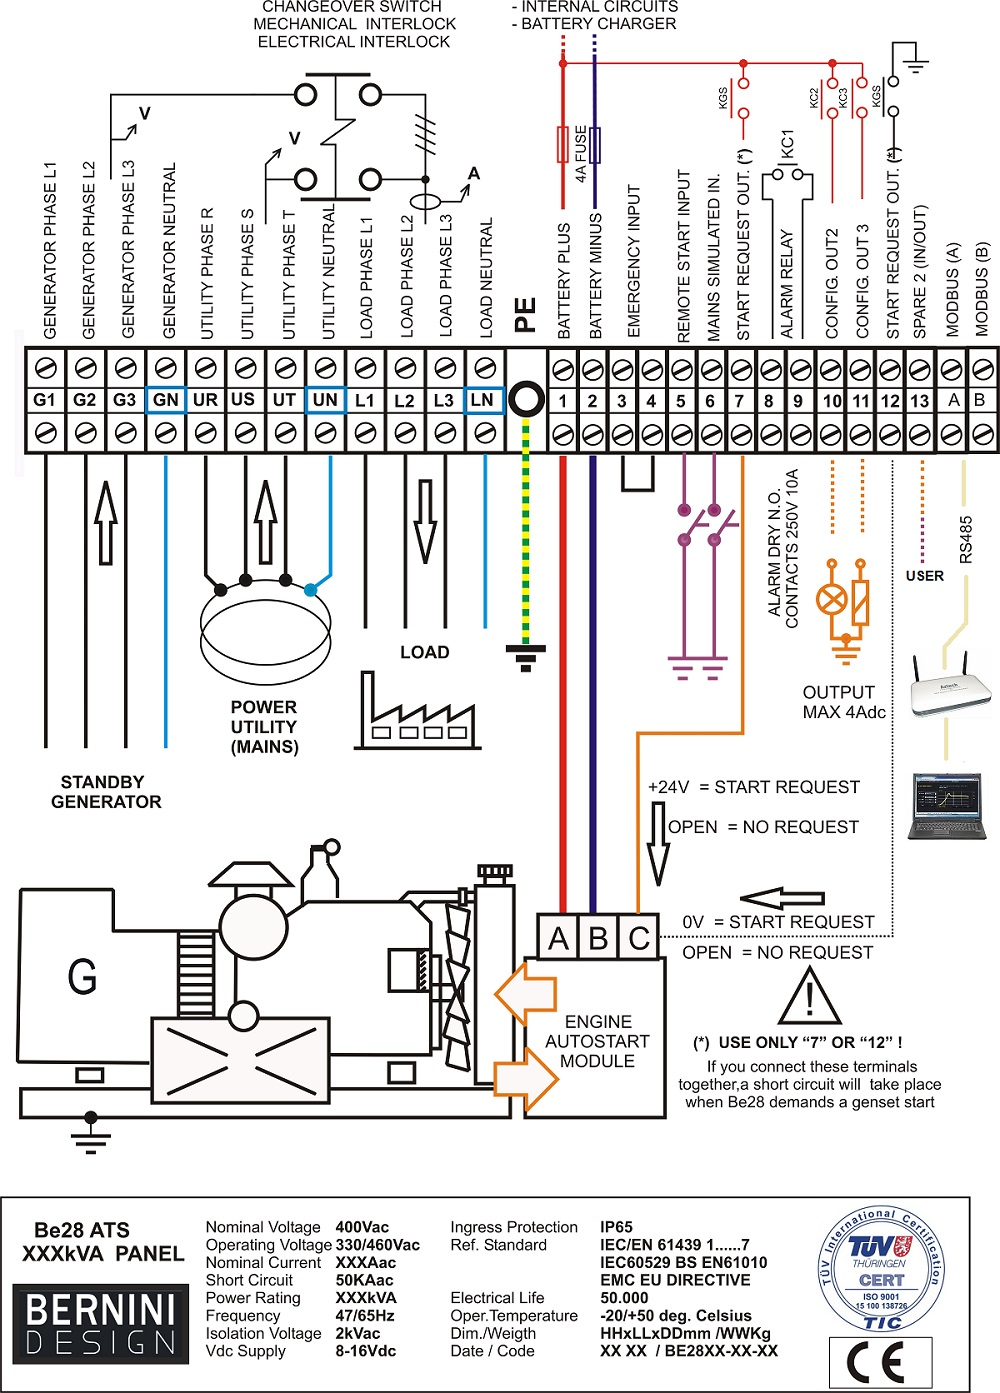 Rotary cam switch wiring diagram wiring two way light switch kpi salzer rotary switch wiring diagram efcaviationcom automatic transfer switch typical wiring 15kva 130kva salzer rotary switch wiring diagramphp rotary cam cheapraybanclubmaster Image collections